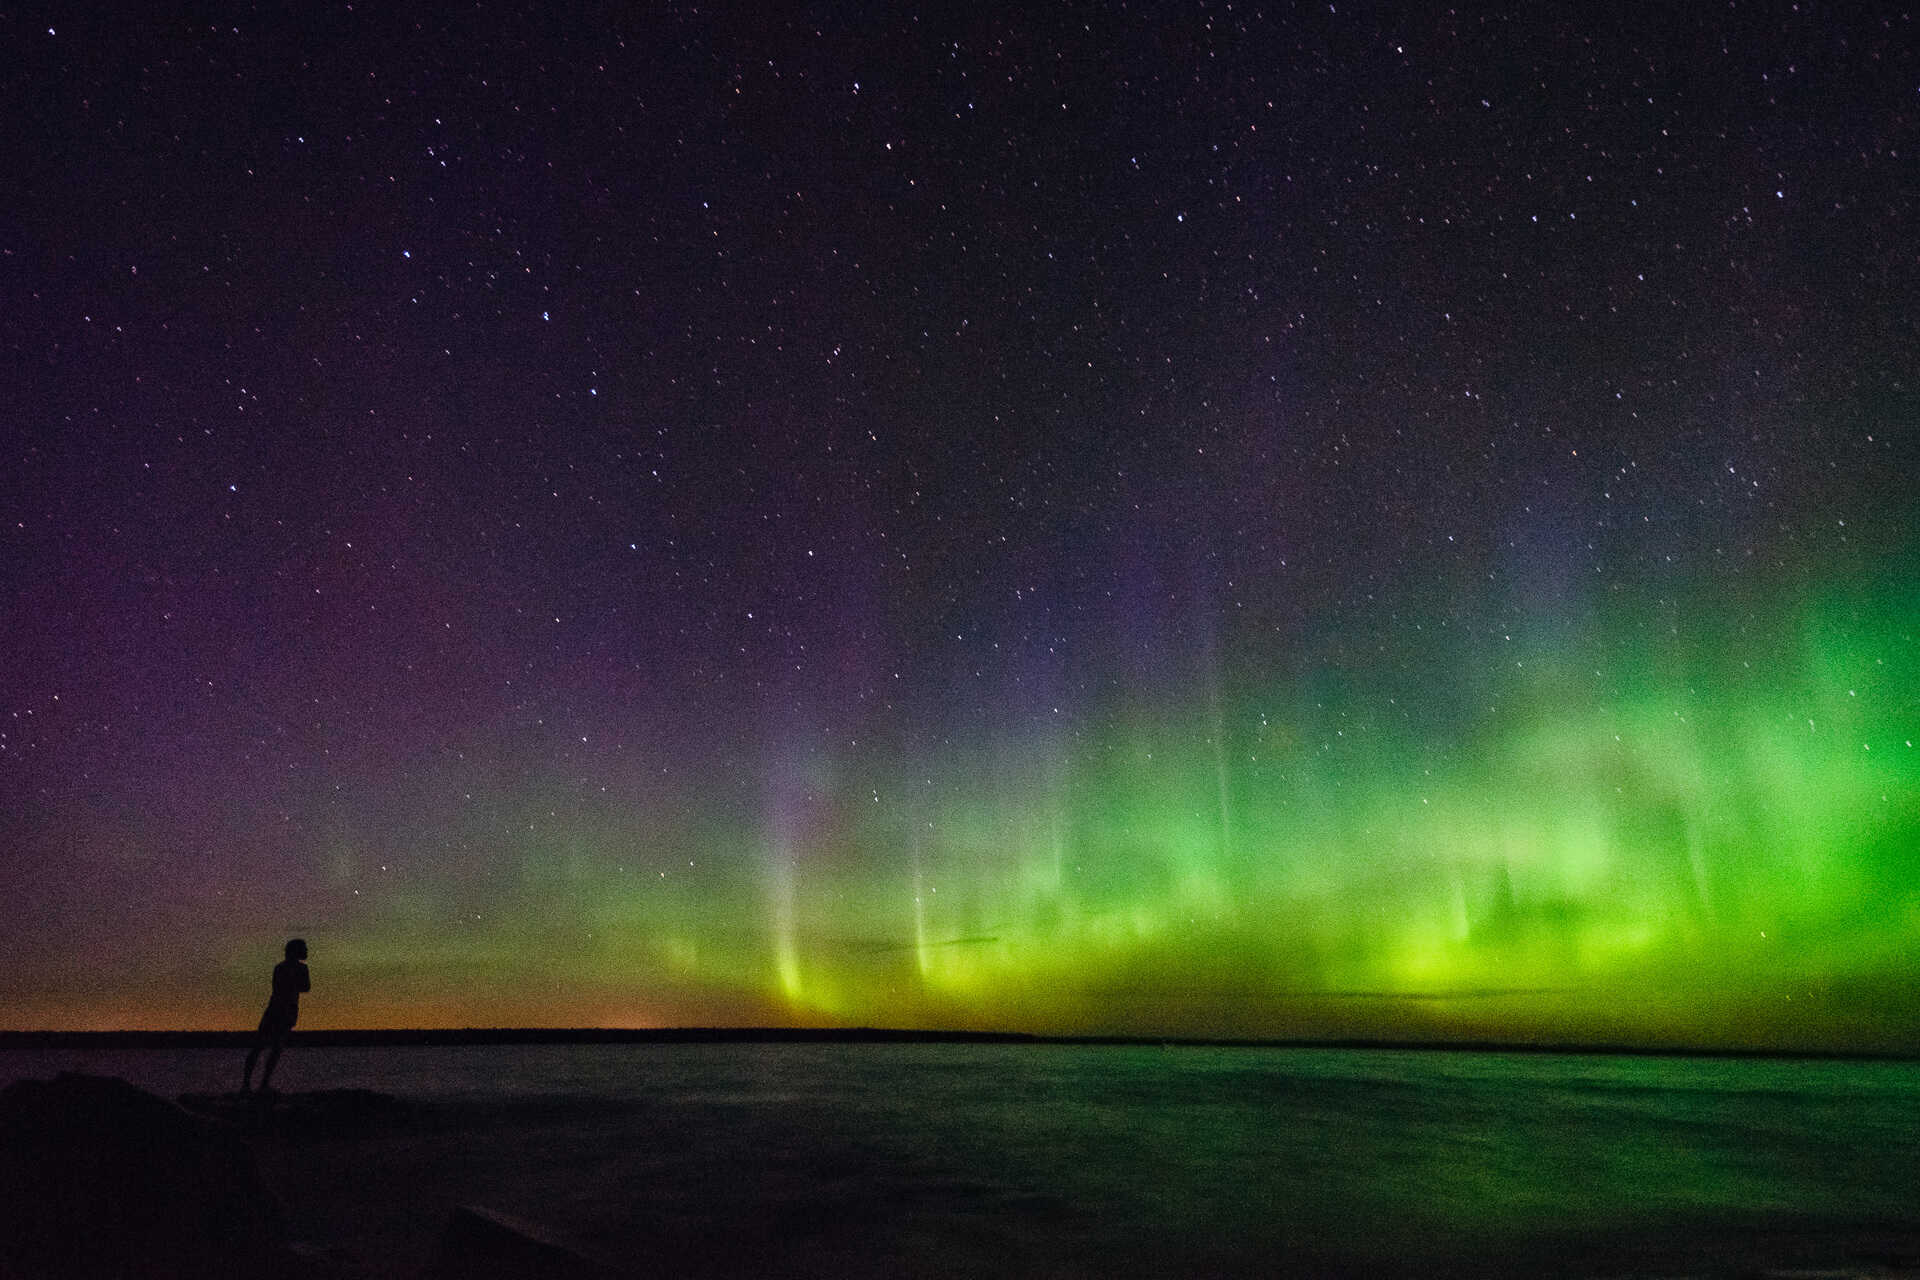 The Northern Lights at Rabbit Island in Torch Lake Township, Michigan